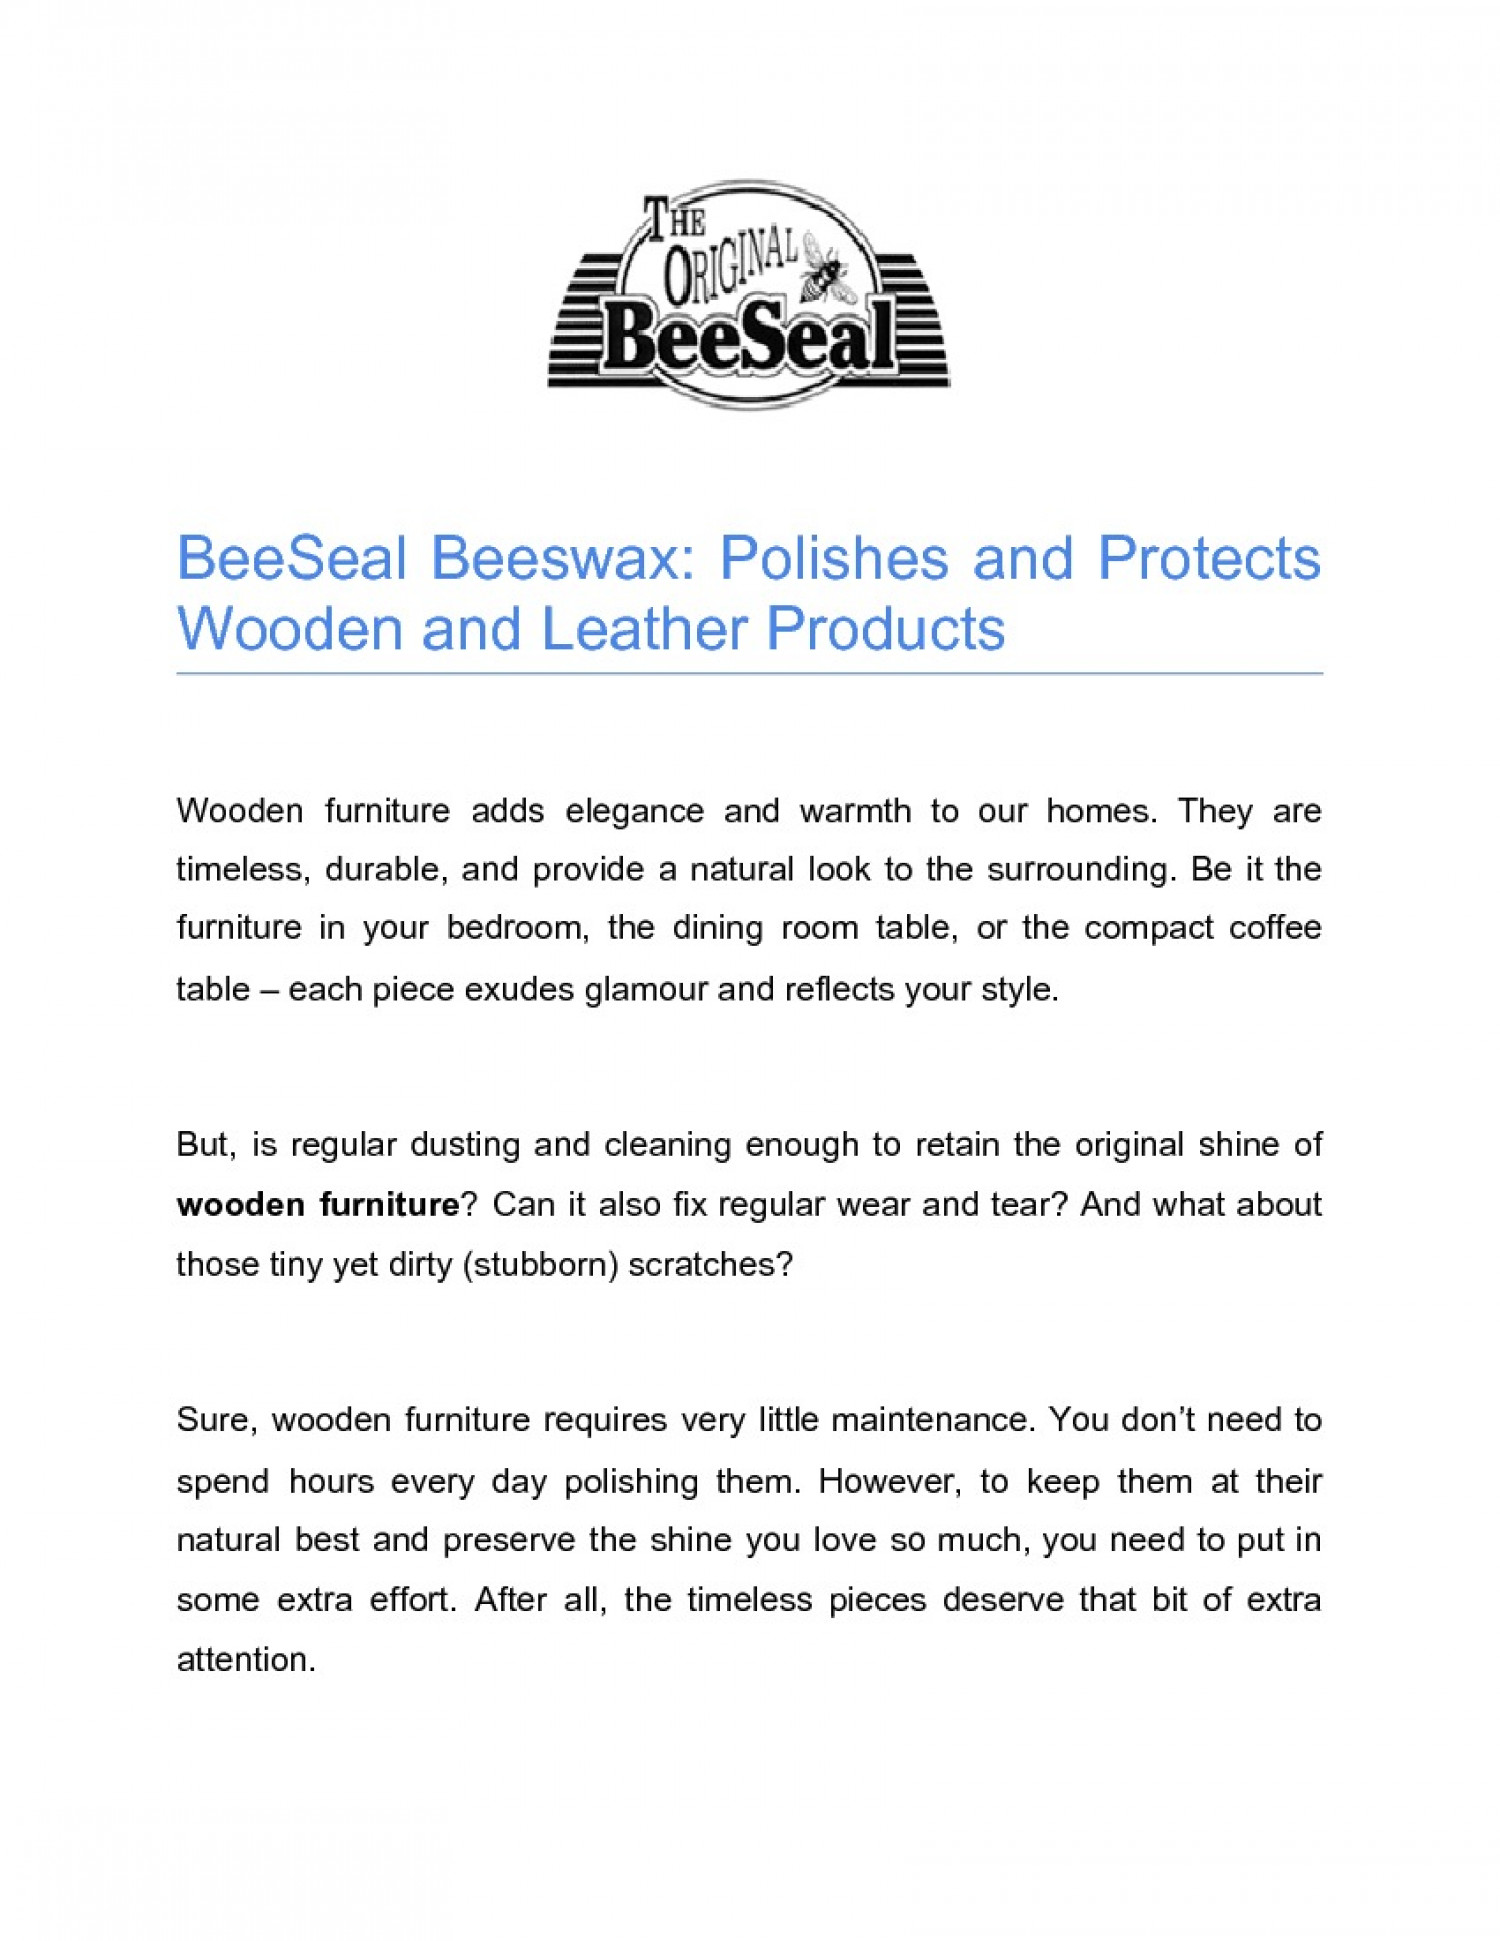 BeeSeal Beeswax: Polishes and Protects Wooden and Leather Products Infographic